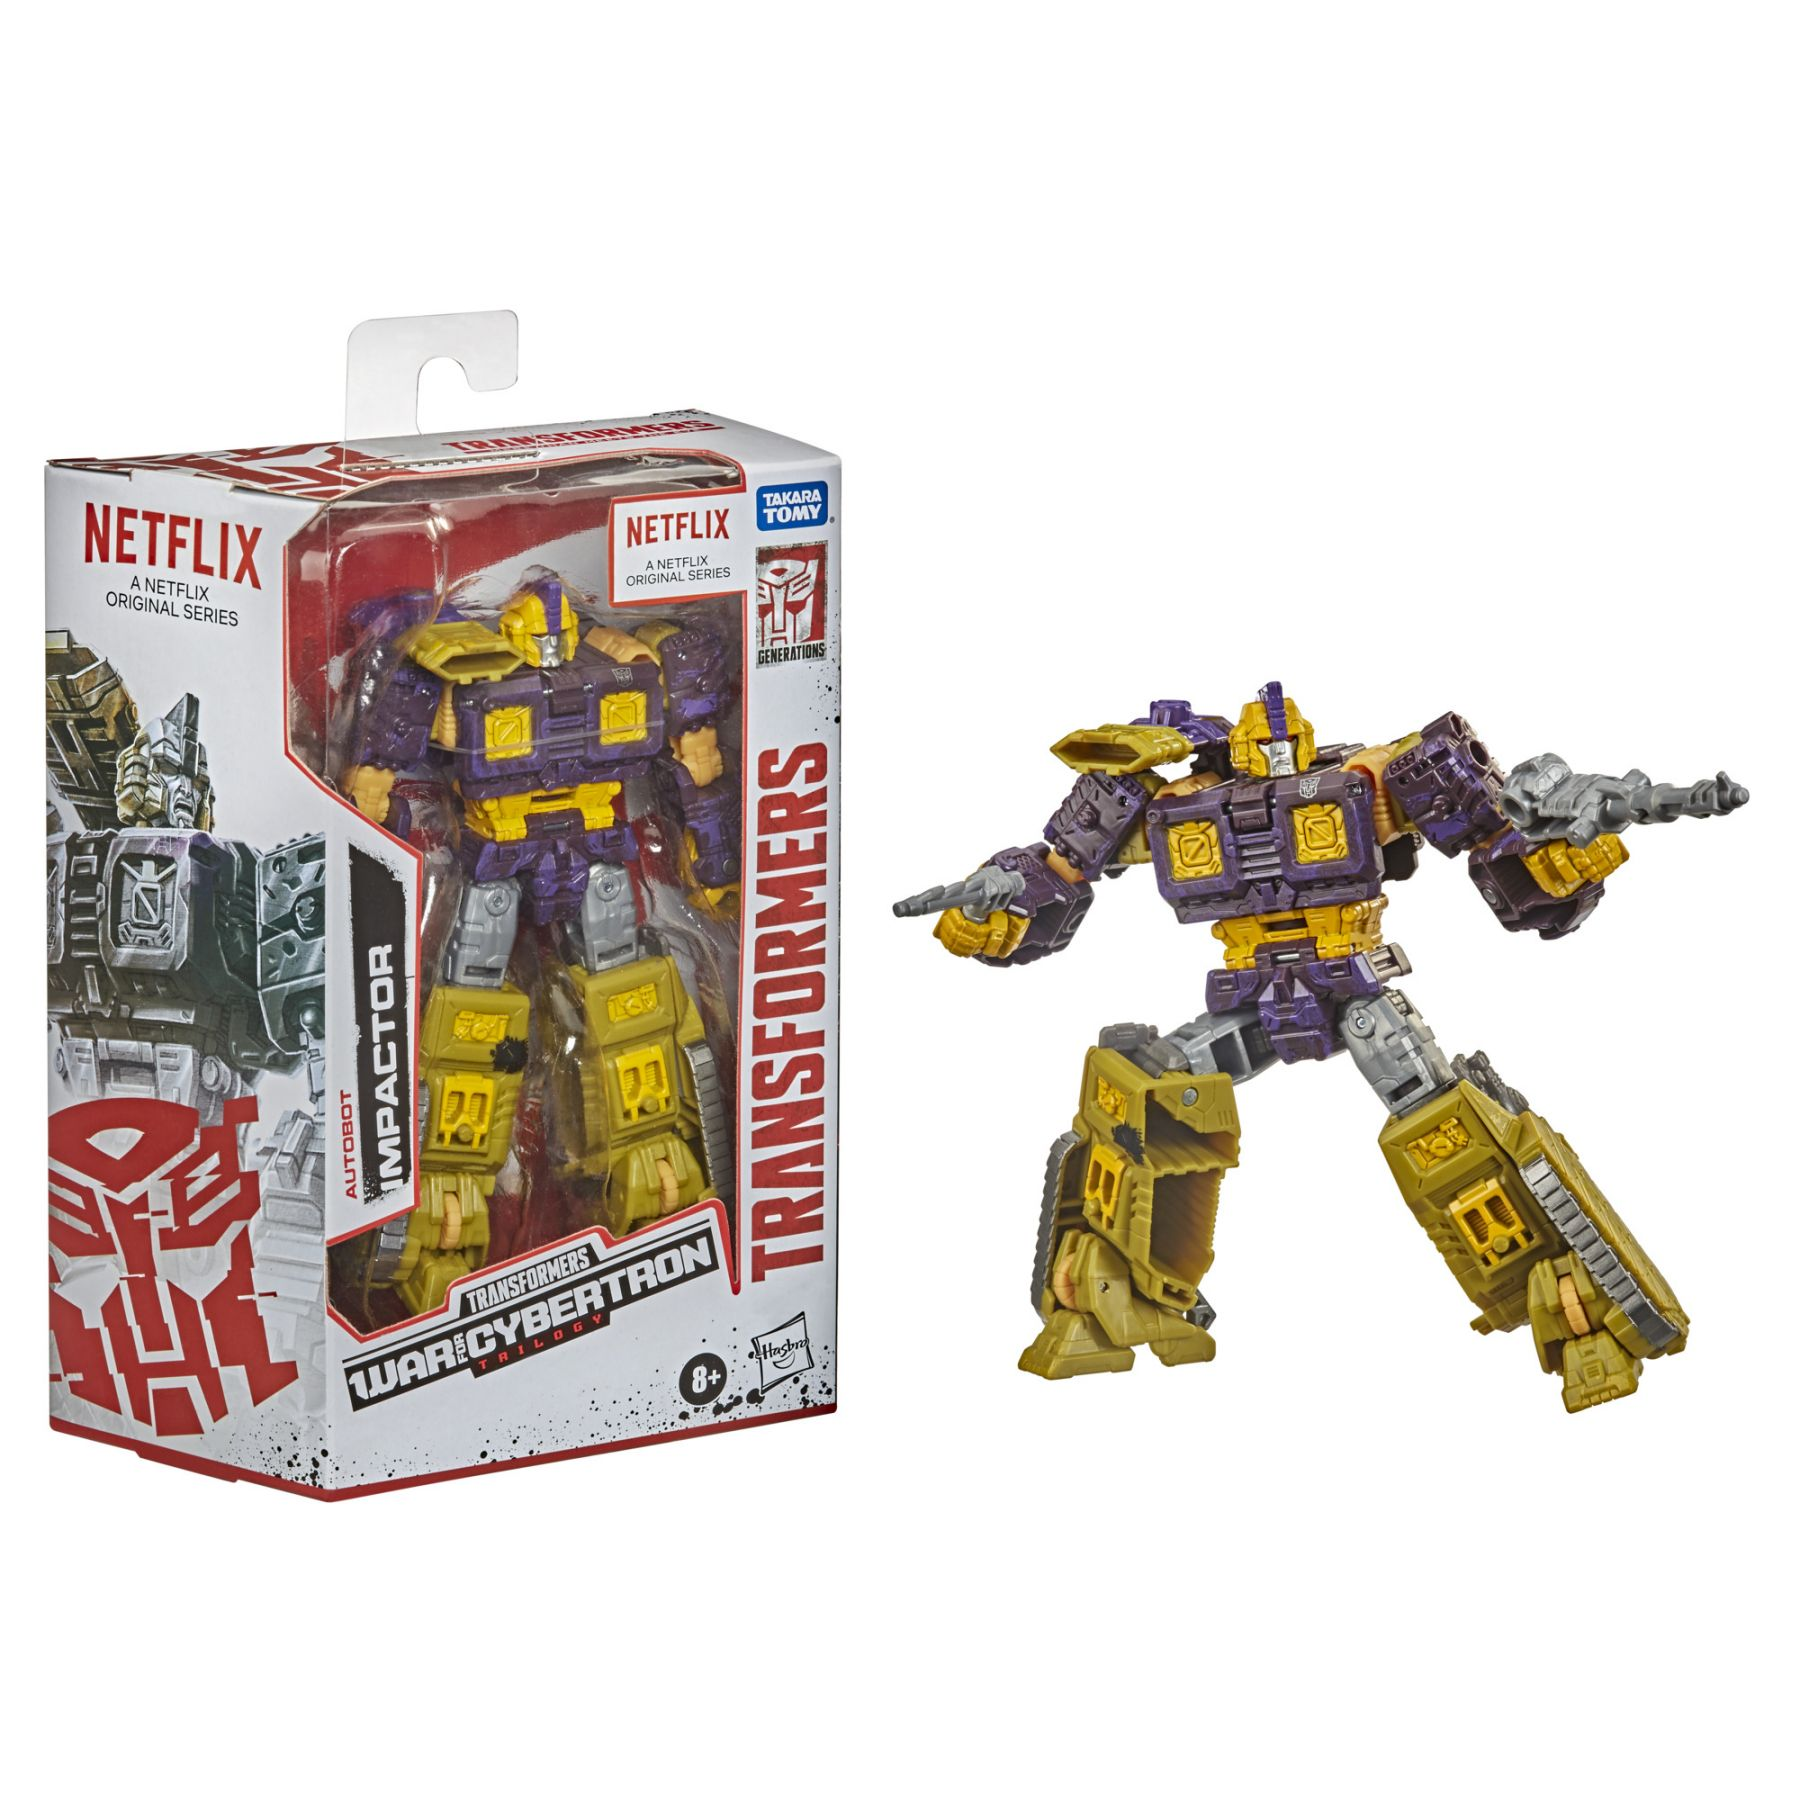 Transformers Generations War for Cybertron Series Deluxe Impactor